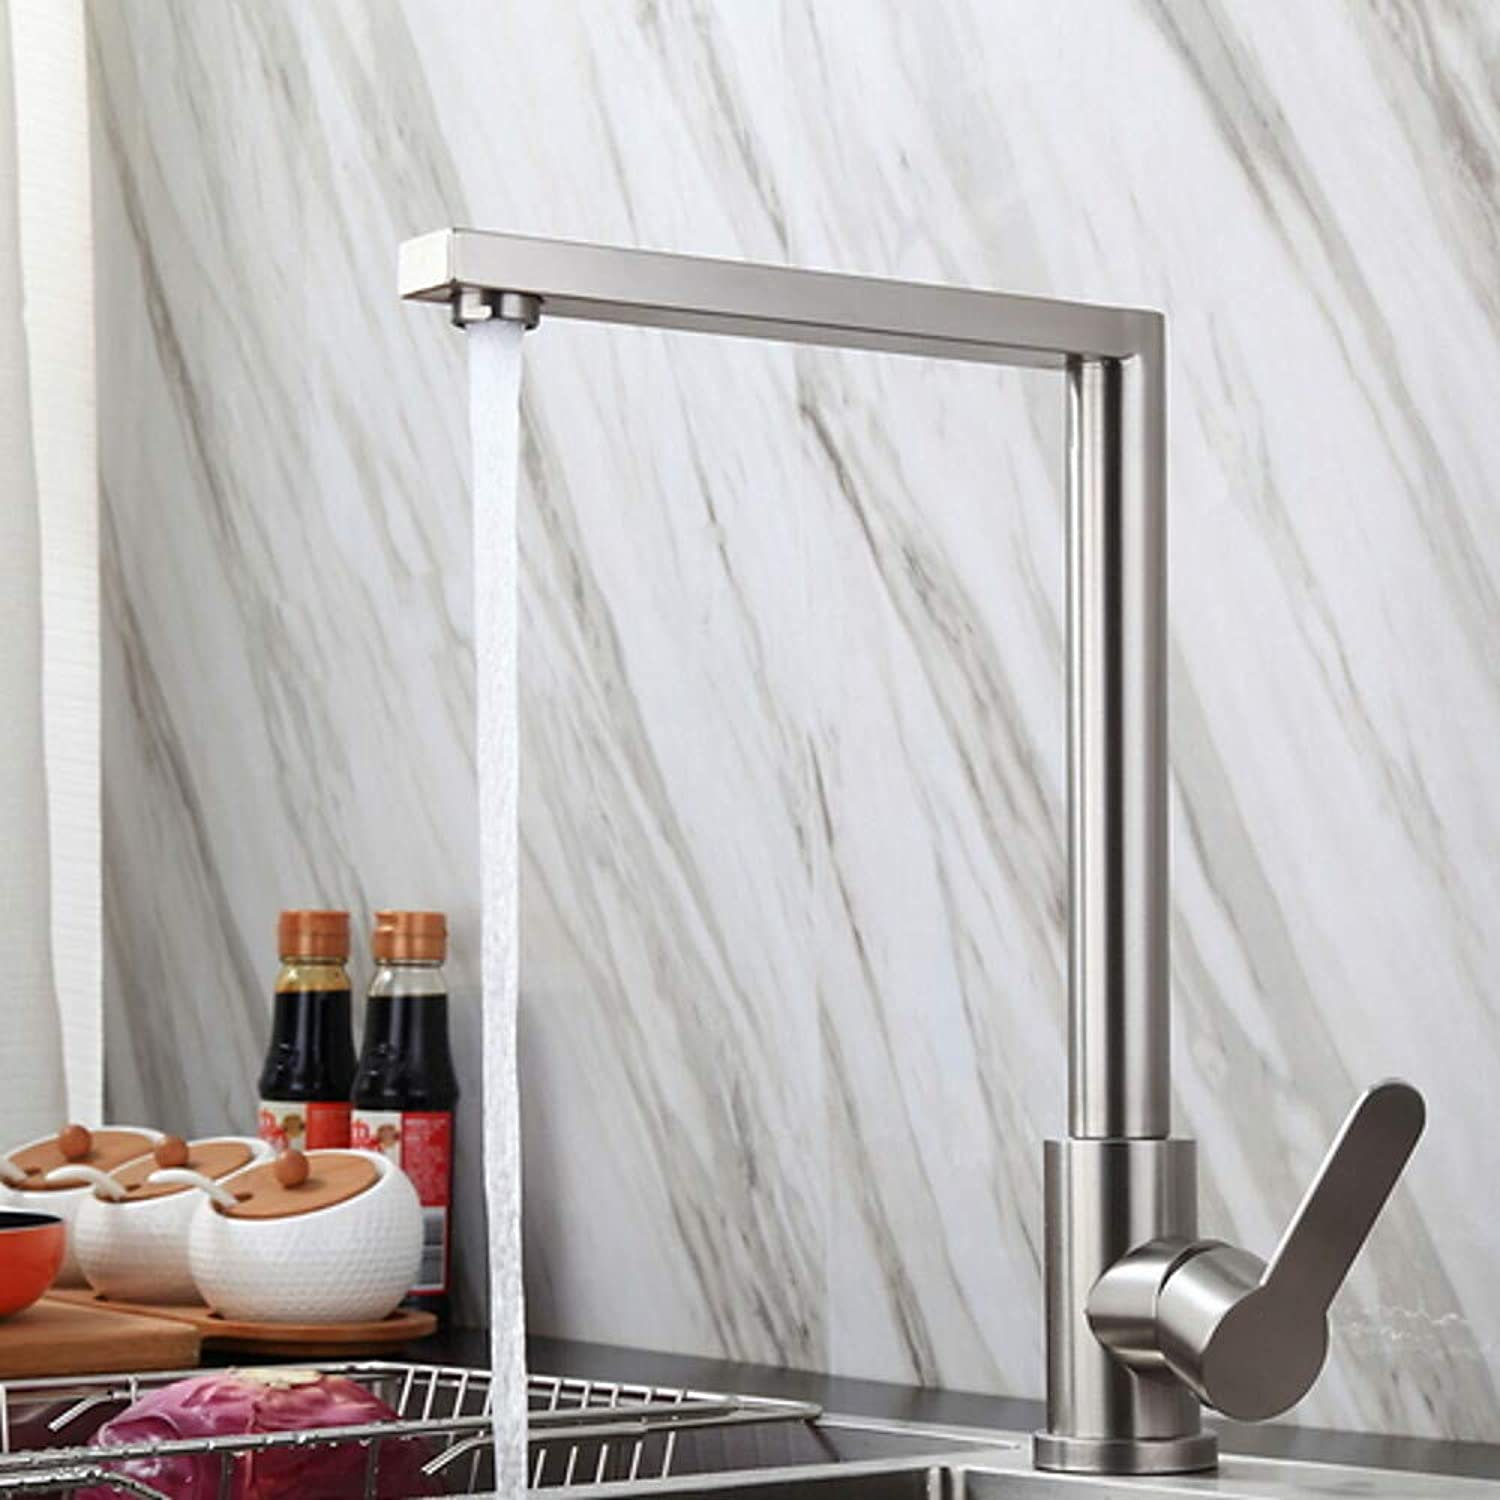 Fire wolf Kitchen faucet:Kitchen Faucet - Single Handle One Hole Stainless Steel Standard Spout Ordinary Kitchen Taps Satin Chrome